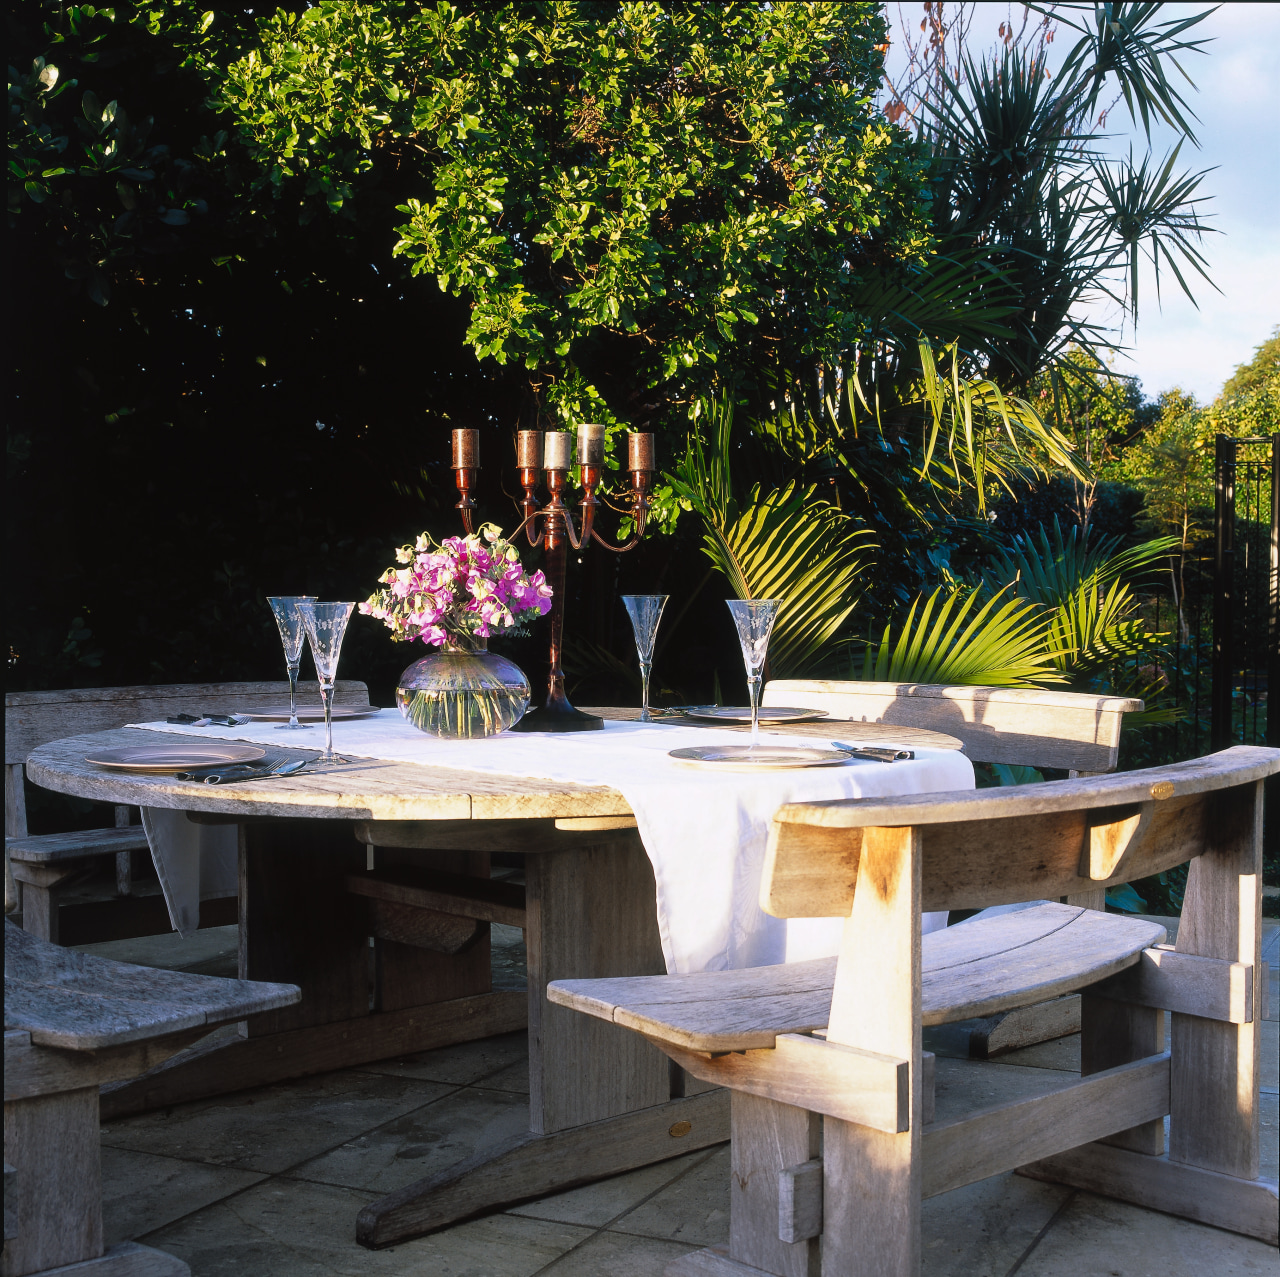 This quaint table setup can be ruined backyard, bench, chair, furniture, outdoor furniture, outdoor structure, patio, plant, table, tree, black